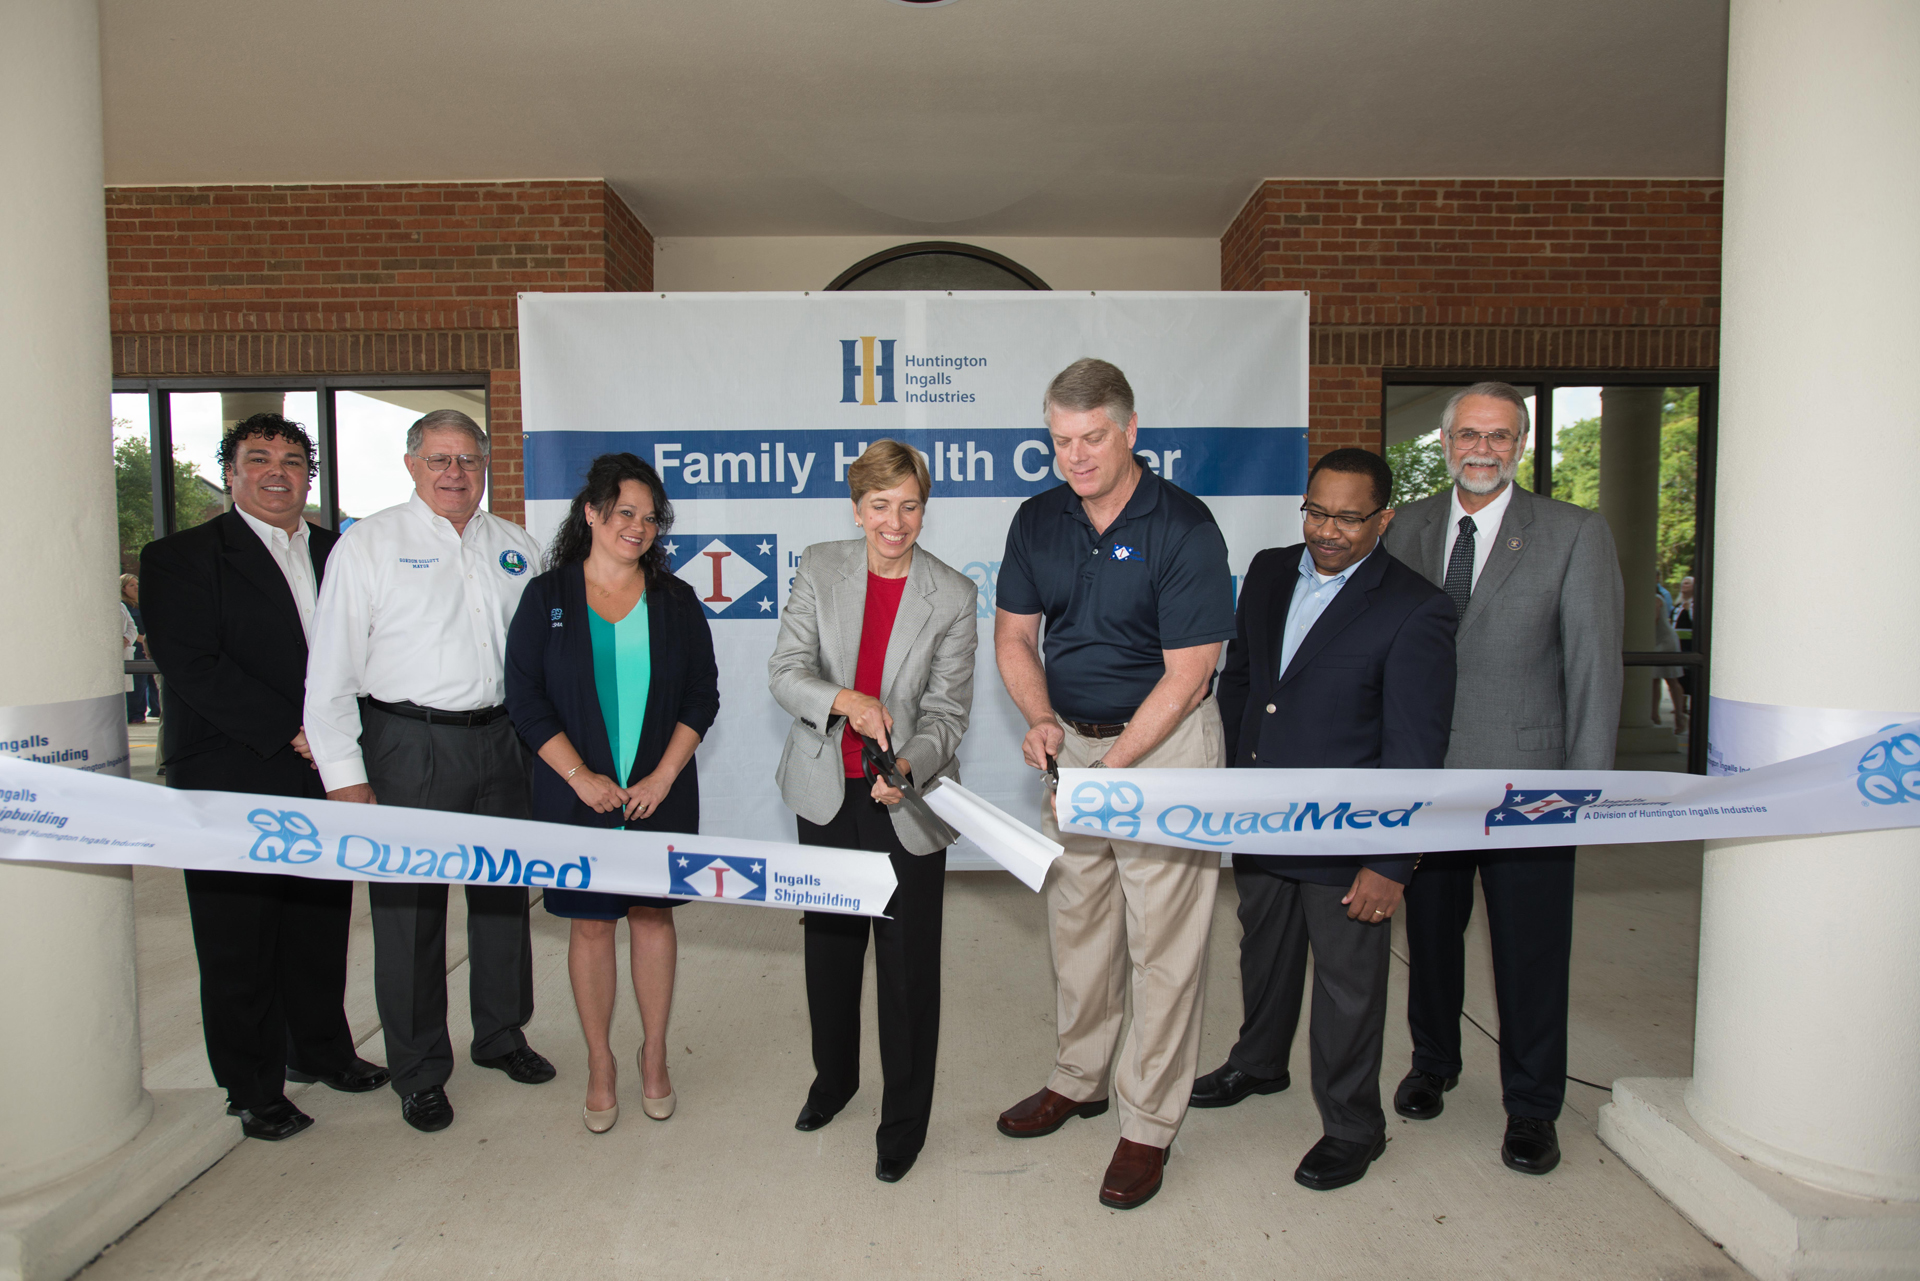 QuadMed President Sue Buettner and Ingalls Shipbuilding President Brian Cuccias cut the ribbon to the HII Family Health Center in Gautier, Miss., on July 1, 2015. Huntington Ingalls Industries photo.